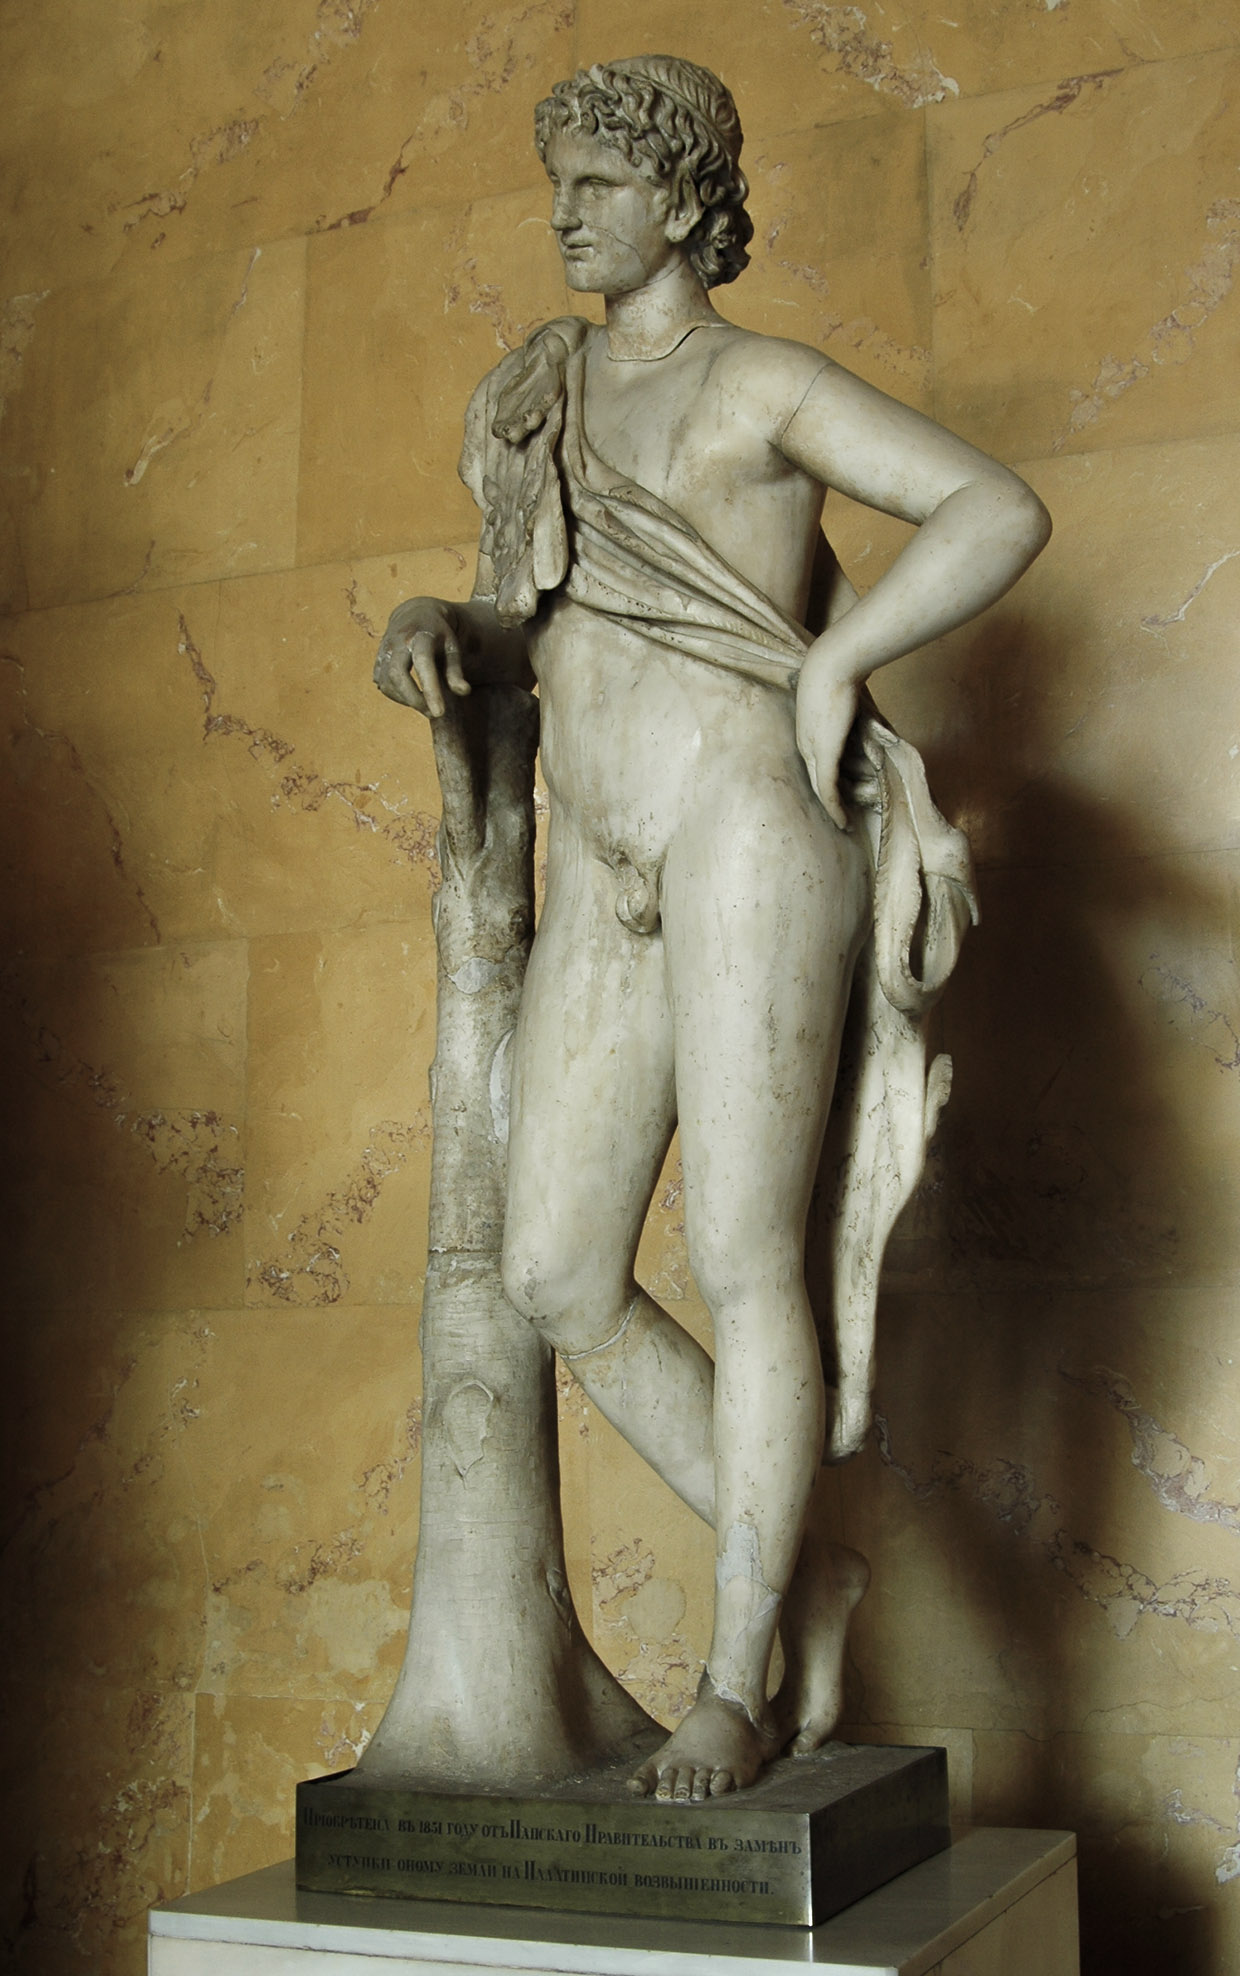 Resting Satyr. Marble. Roman, after Praxiteles' model of the first half of 4th century BCE. Inv. No. A 198. Saint Petersburg, The State Hermitage Museum